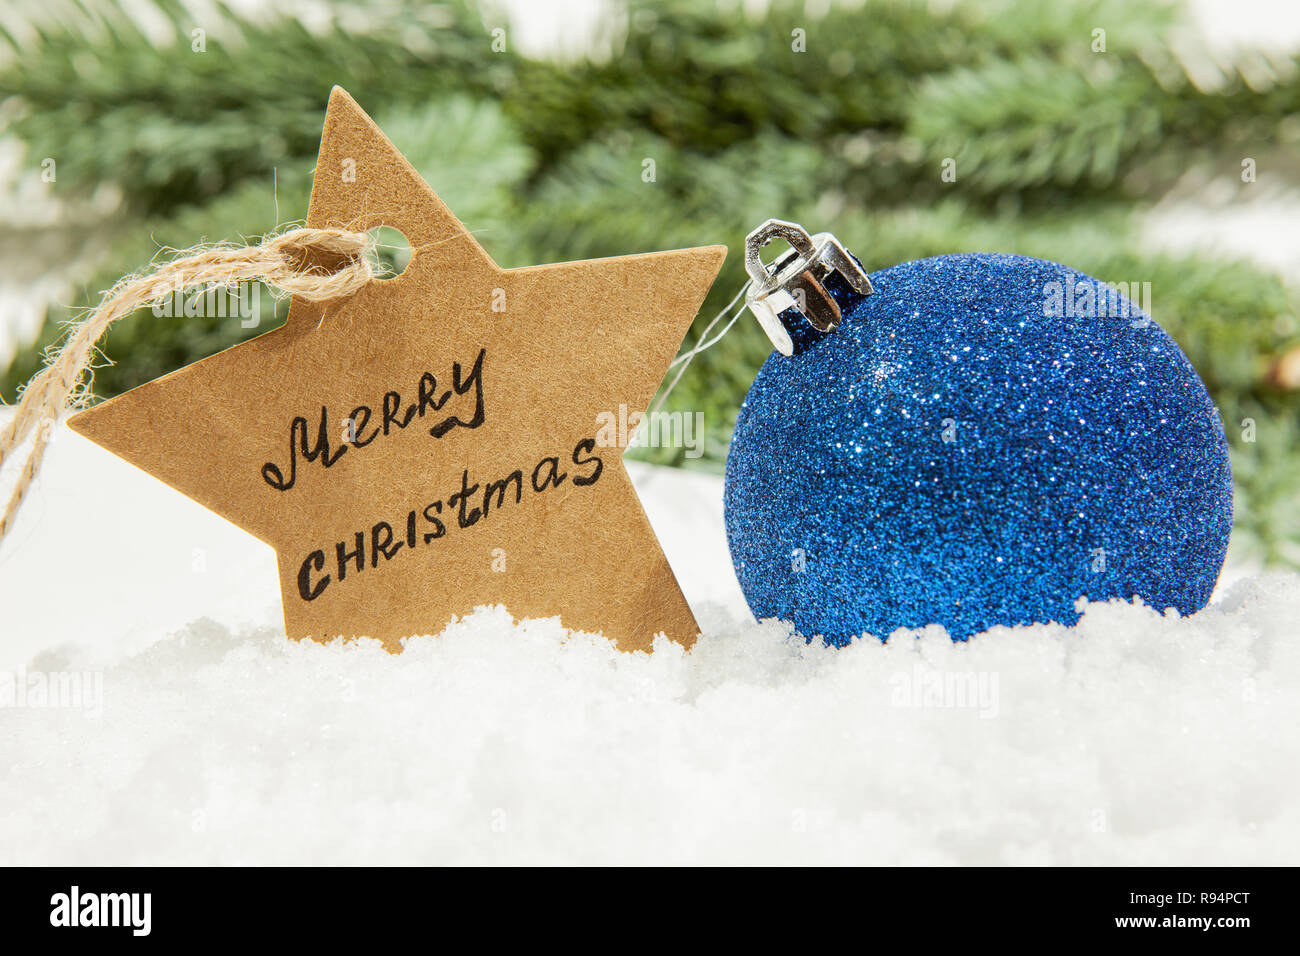 Christmas Ball In Blue On White Snow And A Star With The Inscription